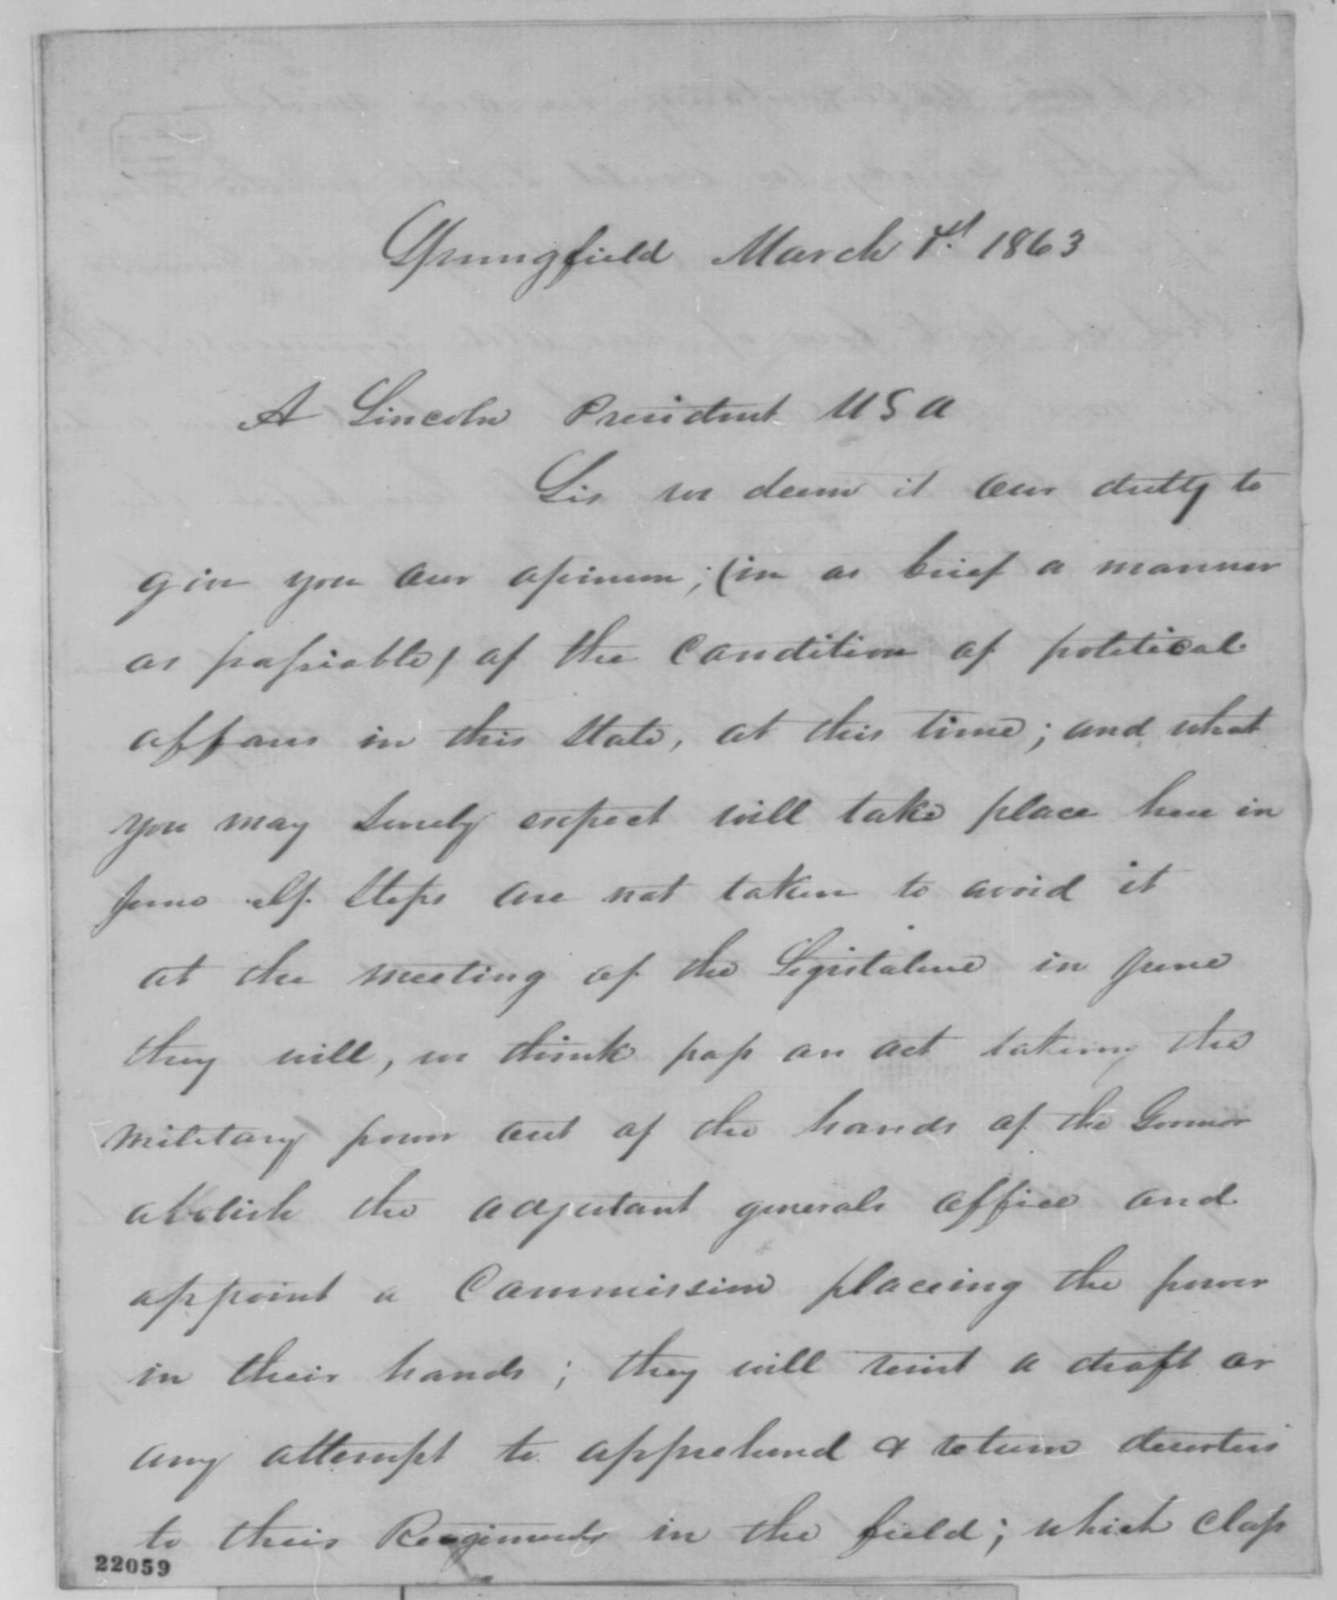 Jesse K. Dubois, Ozias M. Hatch, and William Butler to Abraham Lincoln, Sunday, March 01, 1863  (Political affairs in Illinois; endorsed by Richard Yates)